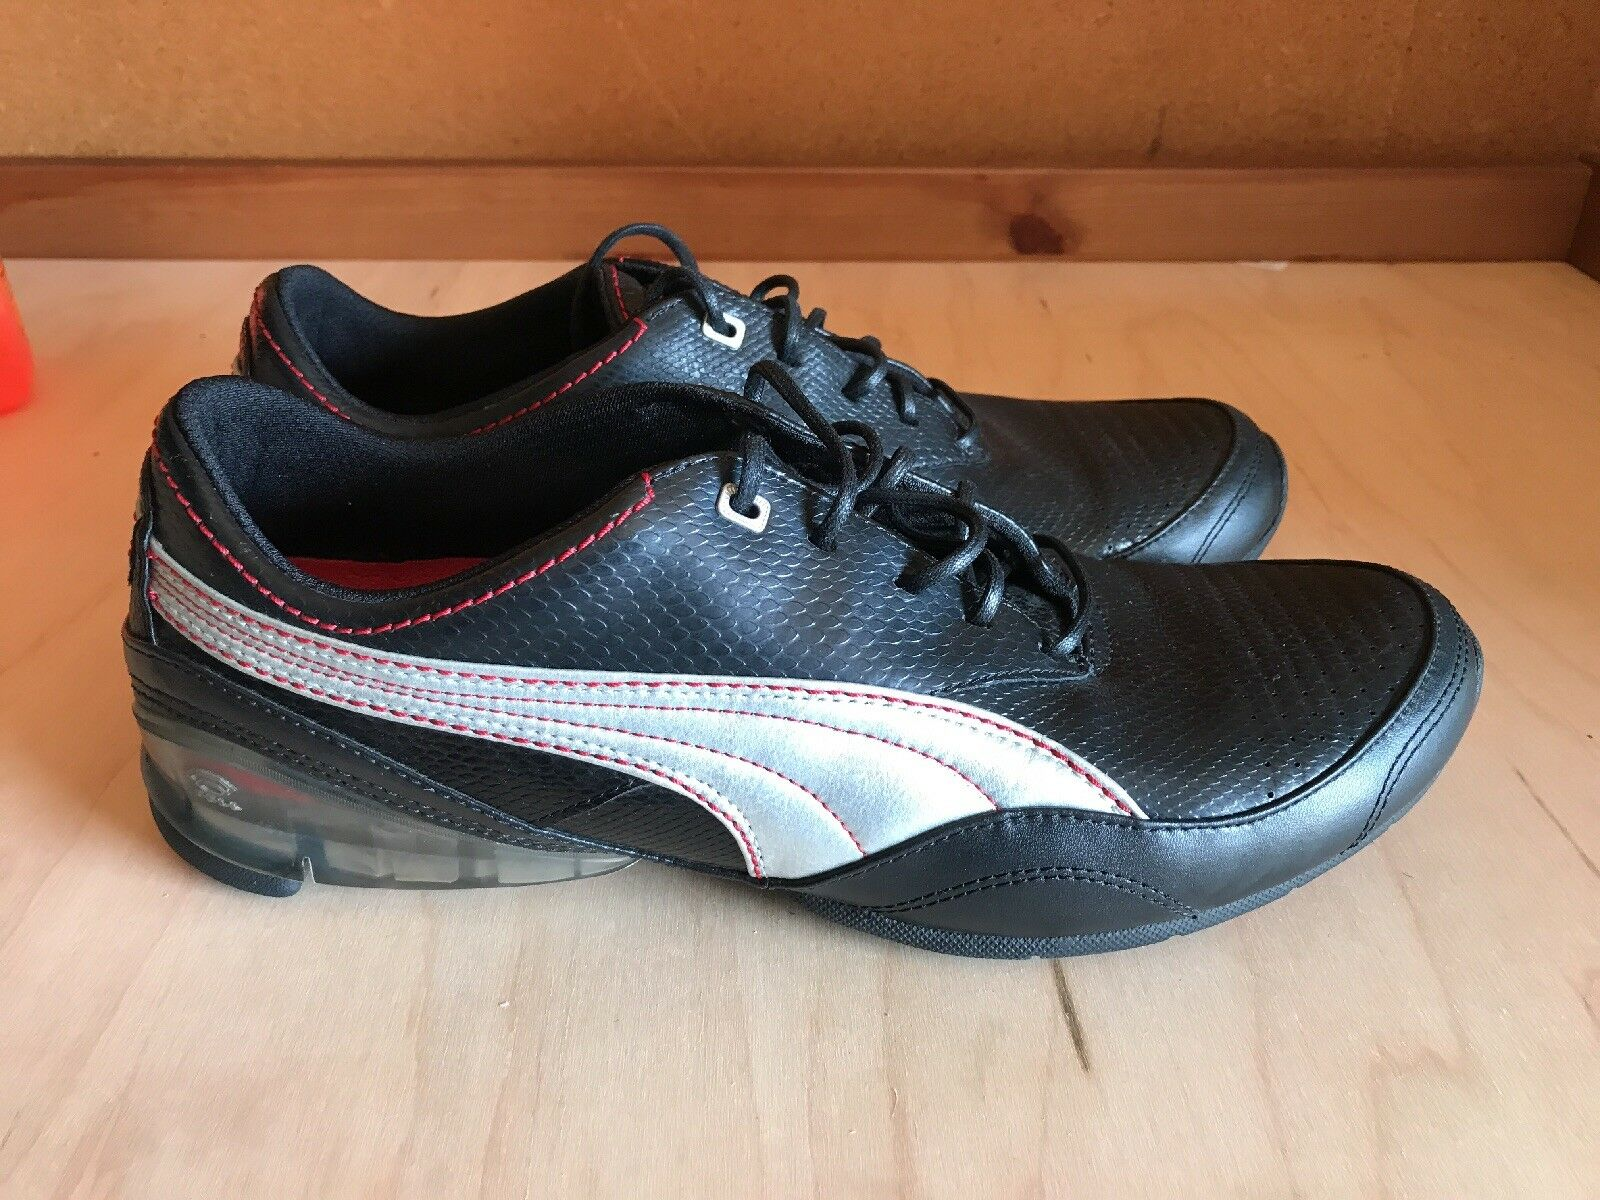 Puma Cell shoes Black size 11 us